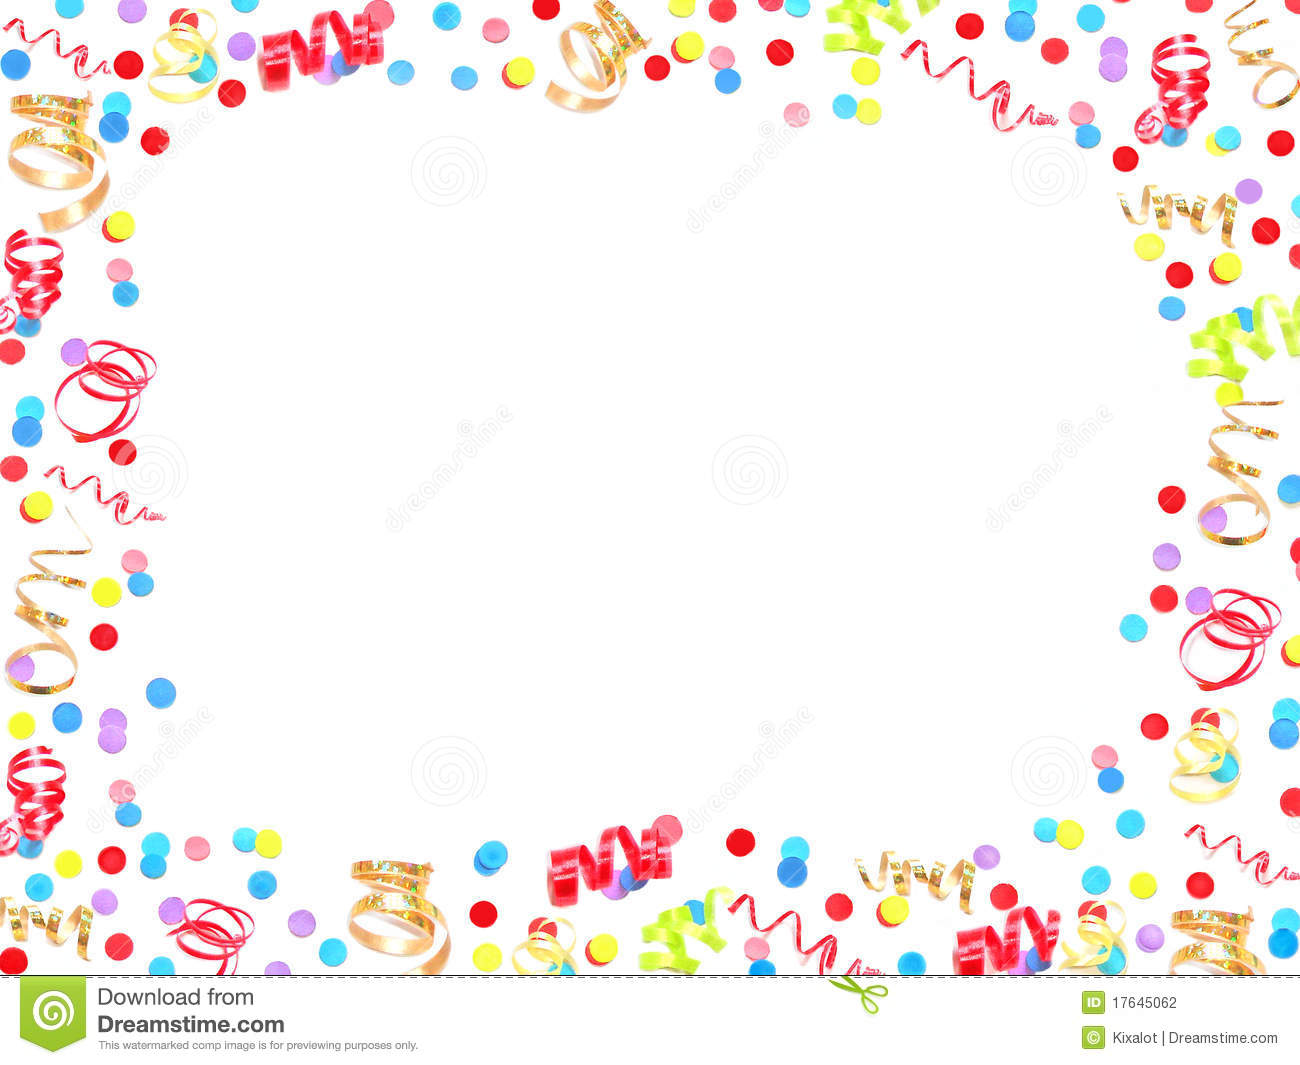 Celebration clipart border.  collection of high